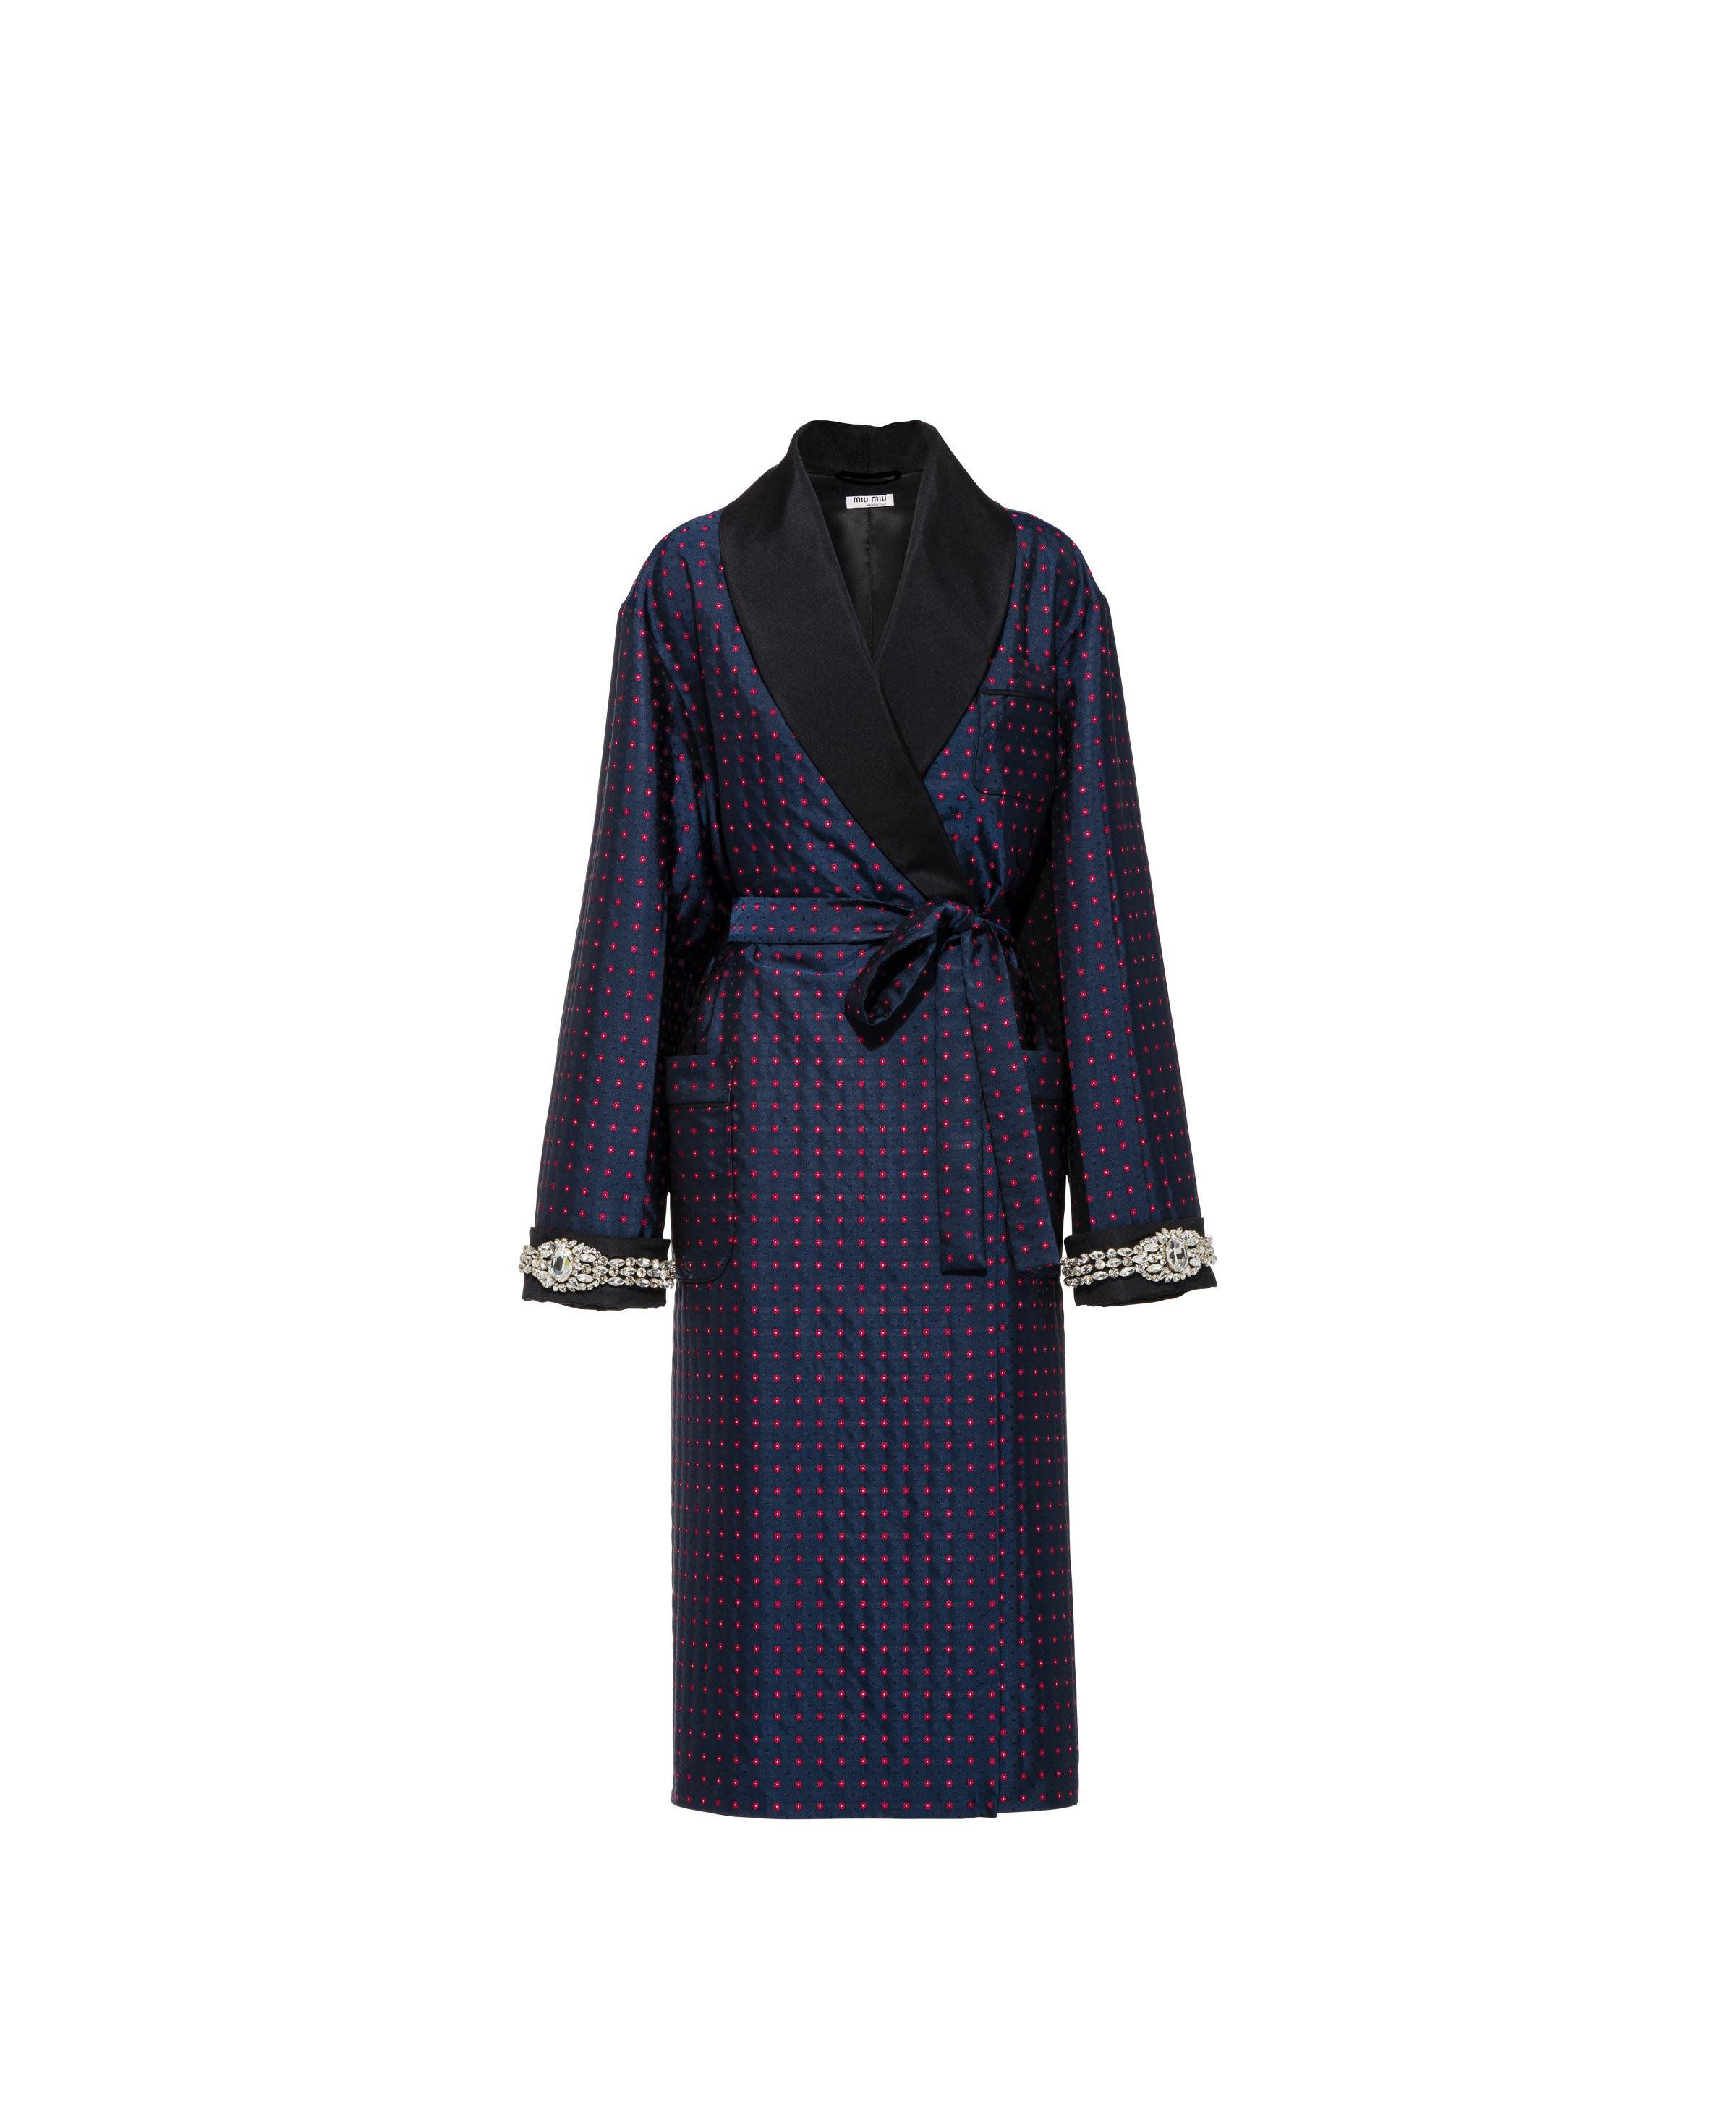 Embroidered Jacquard Coat Women Navy